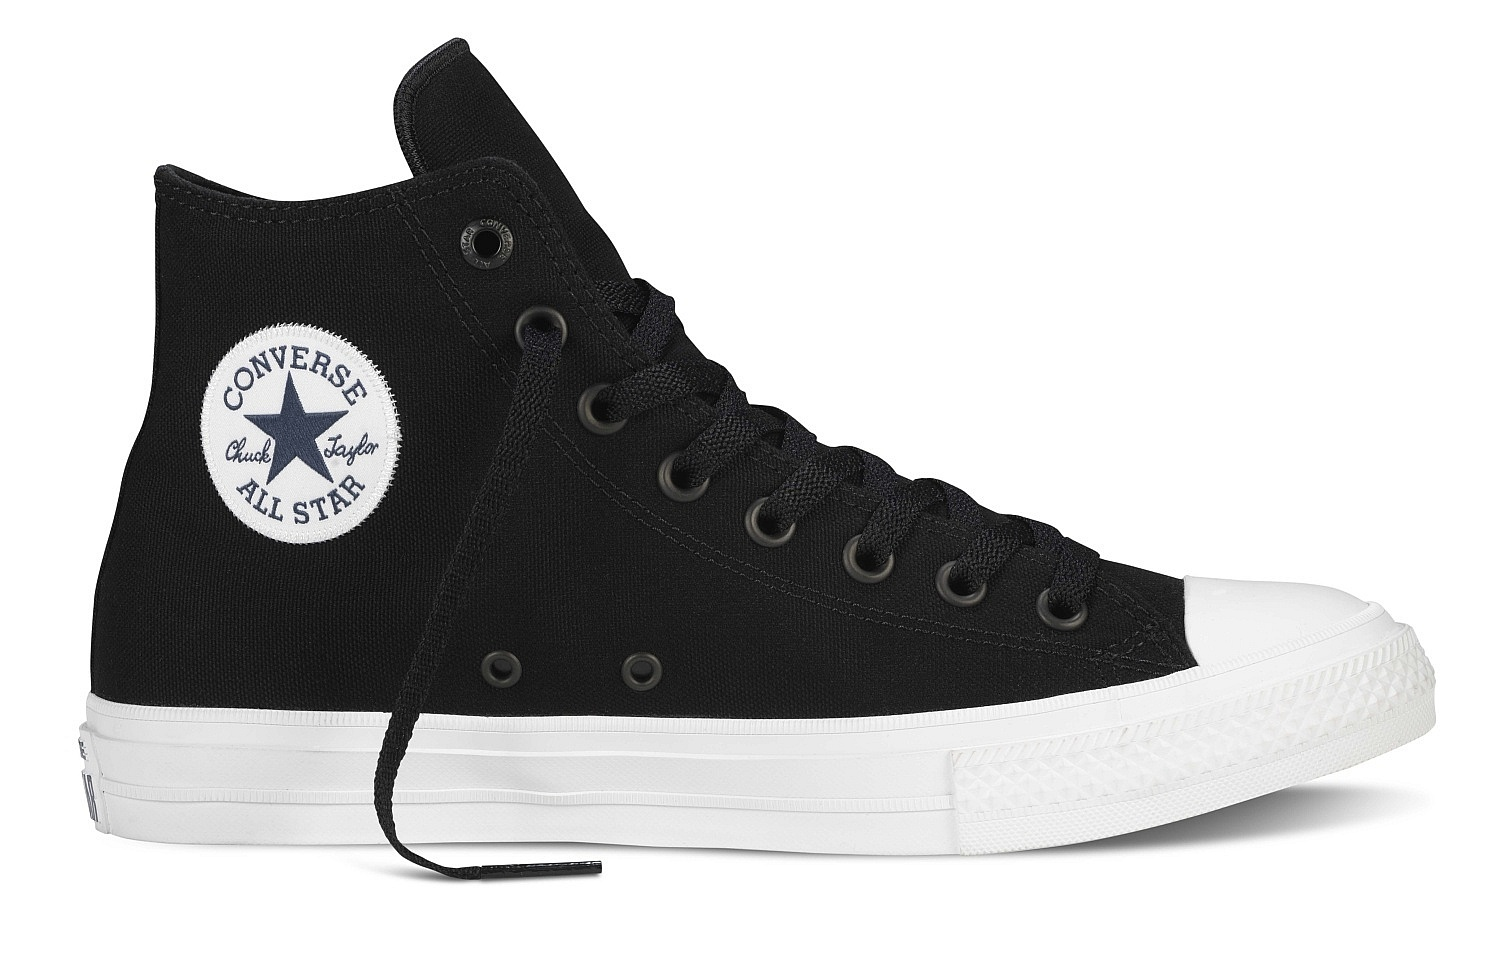 ac170bb05696 boty Converse Chuck Taylor All Star II Hi - 150143 Black White Navy -  Snowboard shop